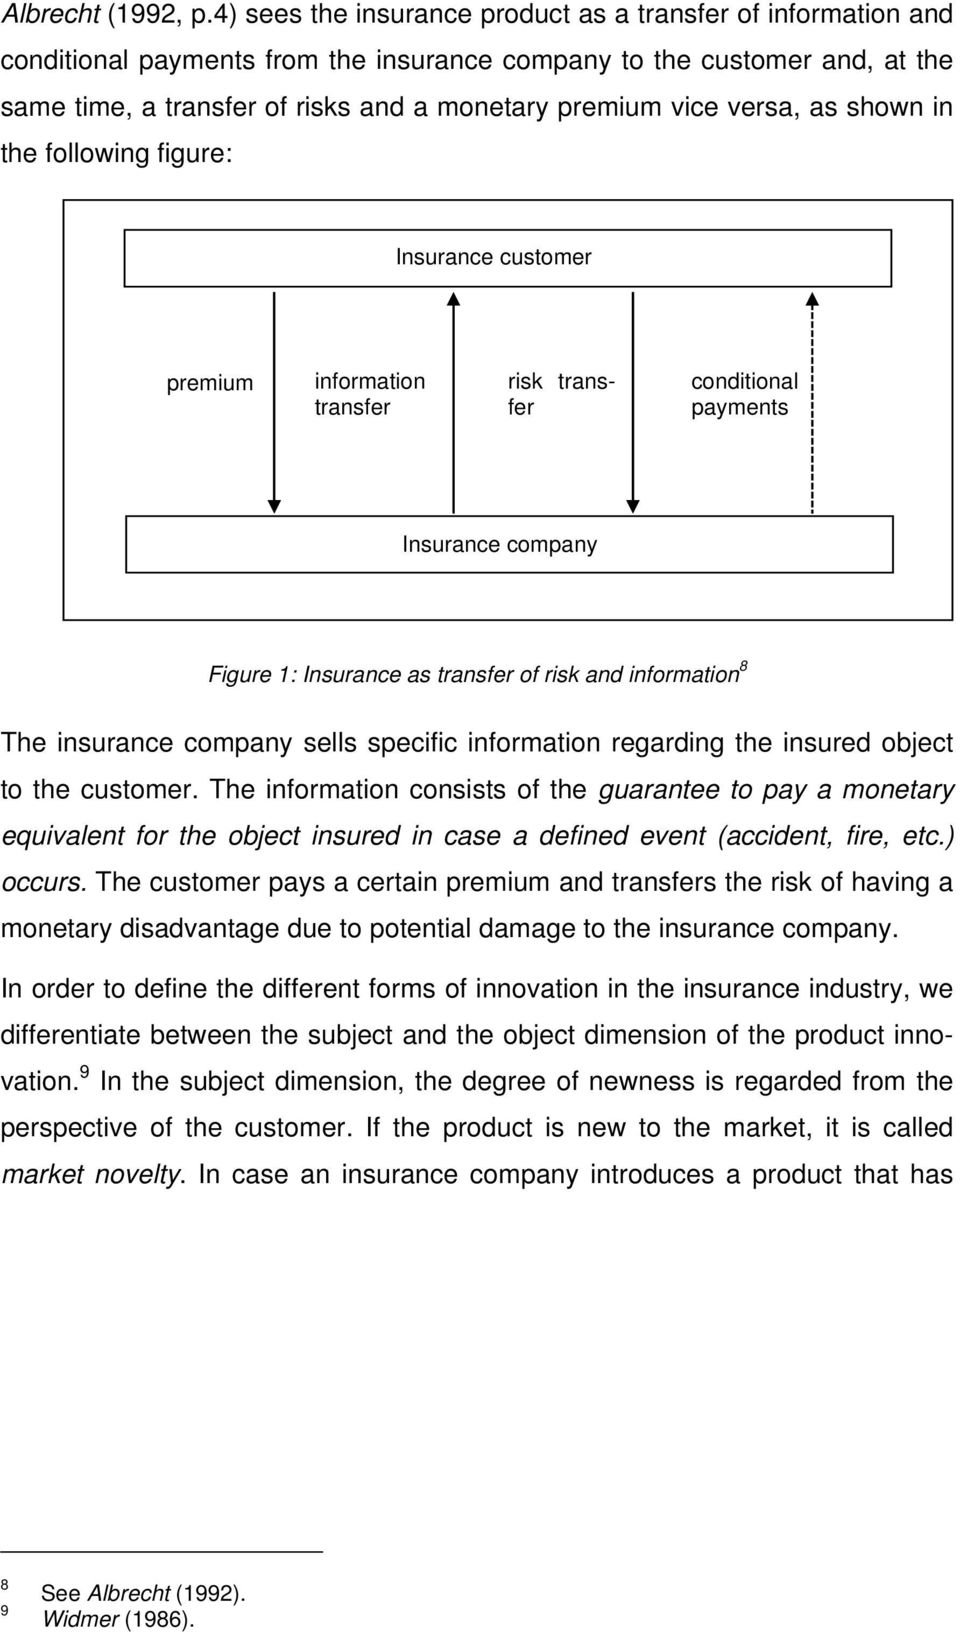 versa, as shown in the following figure: Insurance customer premium information transfer risk transfer conditional payments Insurance company Figure 1: Insurance as transfer of risk and information 8